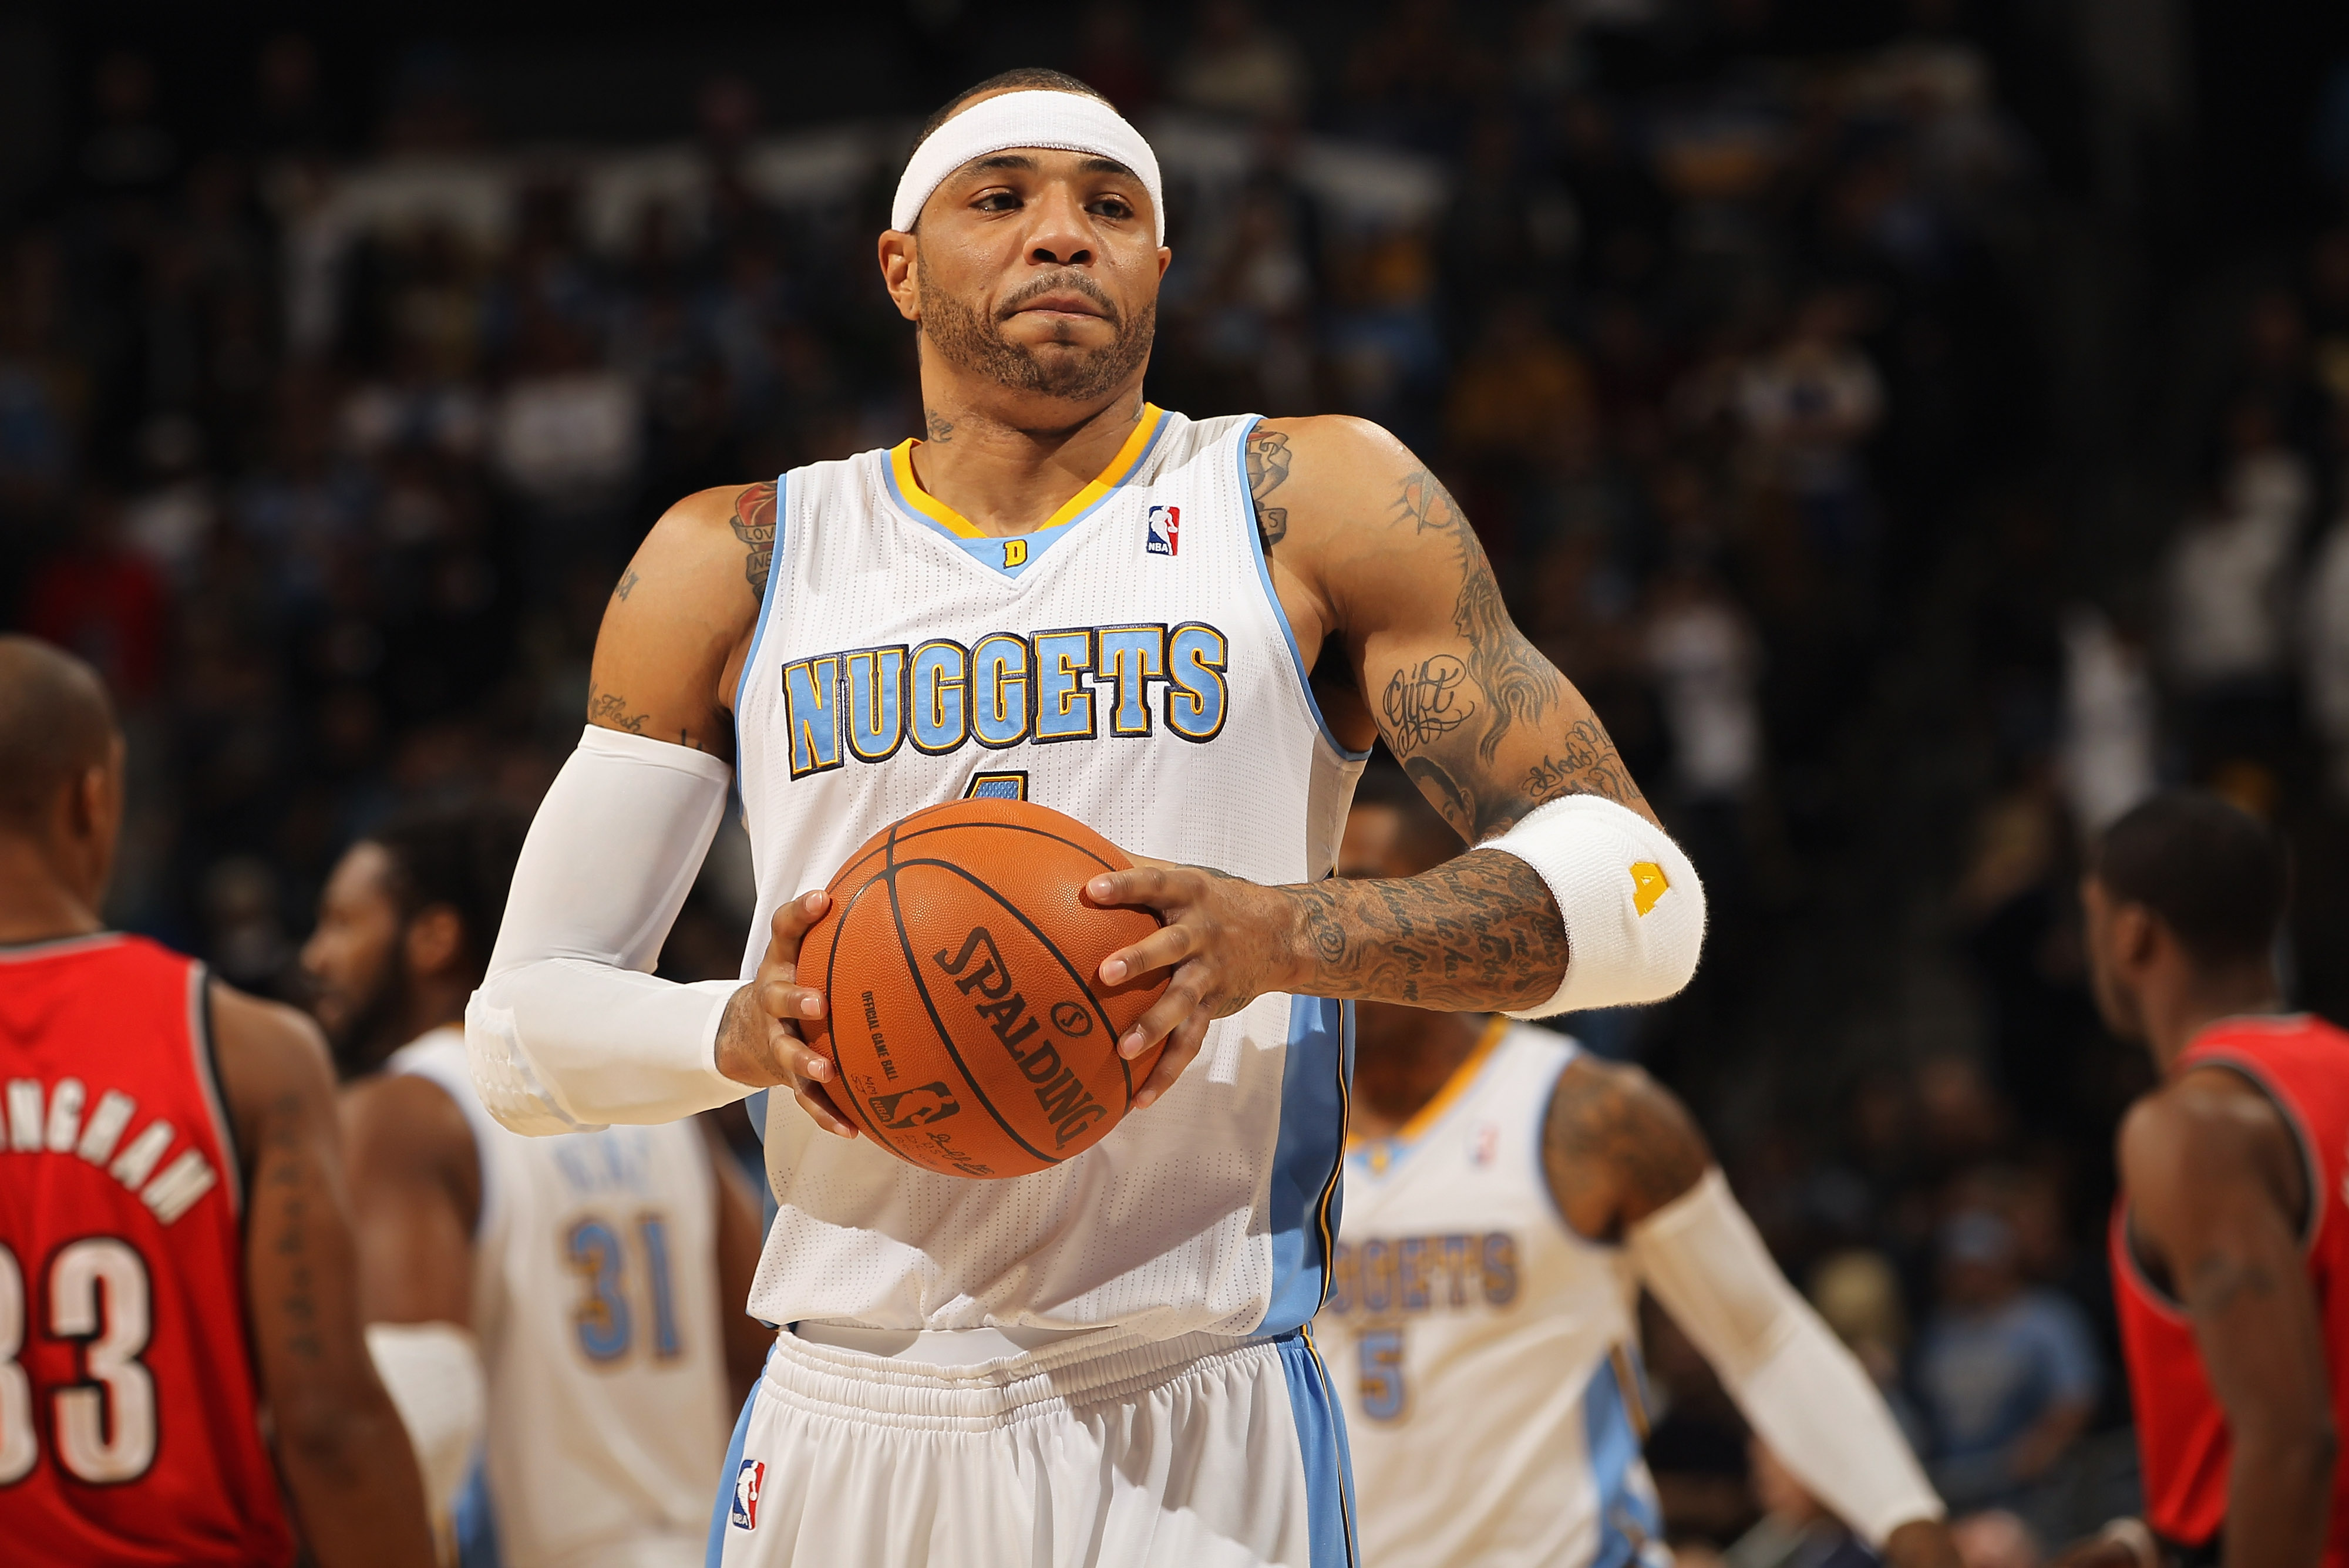 DENVER - DECEMBER 28:  Kenyon Martin #4 of the Denver Nuggets collects the ball against the Portland Trail Blazers at Pepsi Center on December 28, 2010 in Denver, Colorado. The Nuggets defeated the Blazers 95-77. NOTE TO USER: User expressly acknowledges